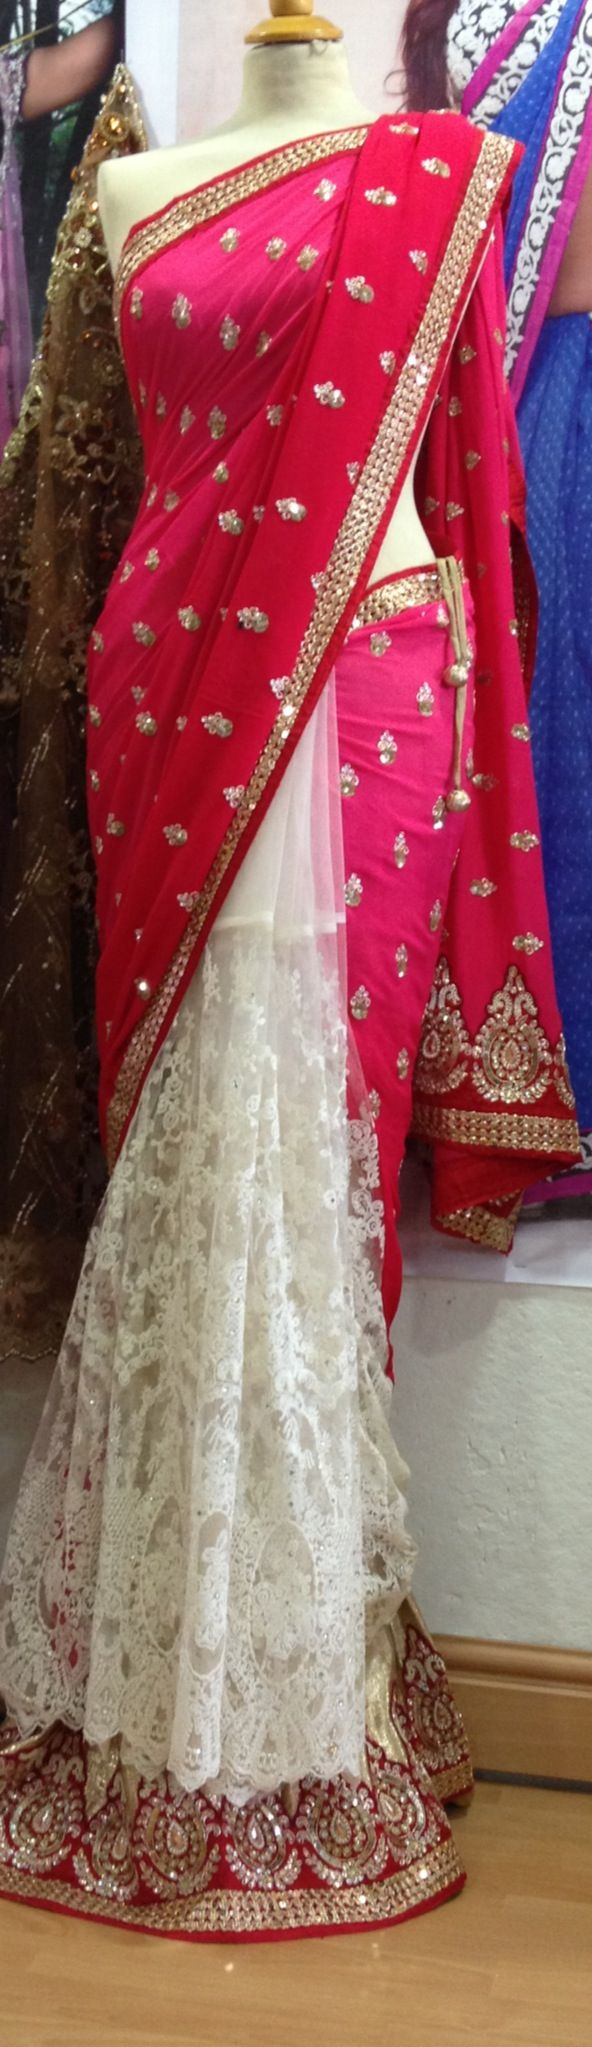 Pink + Cream Saree